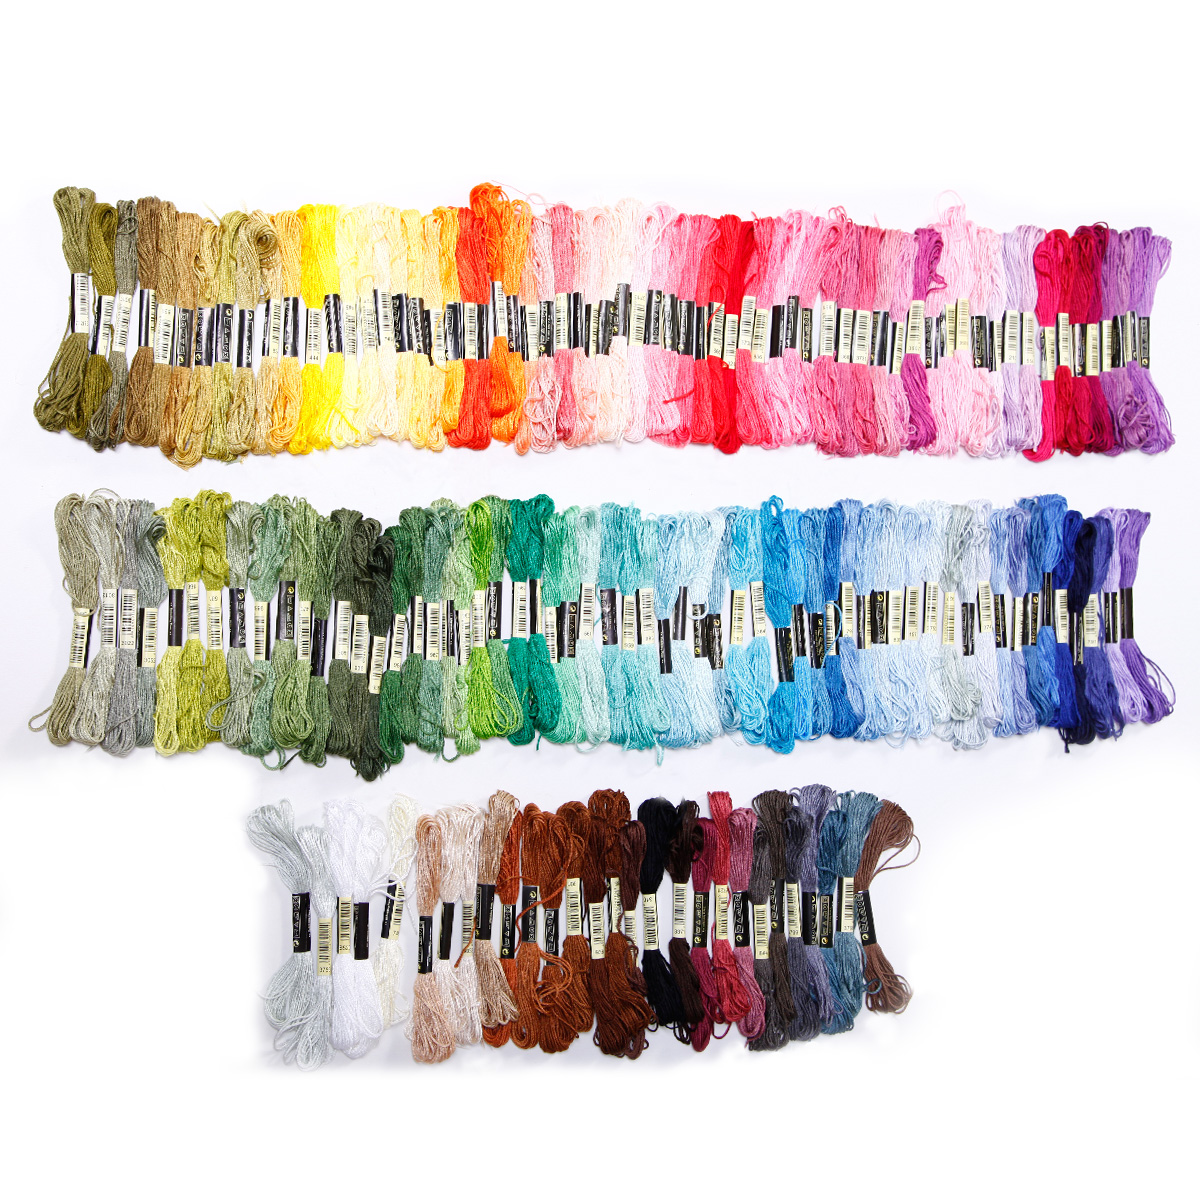 50-300 Color Cross Stitch Thread Embroidery Floss Sewing Ske